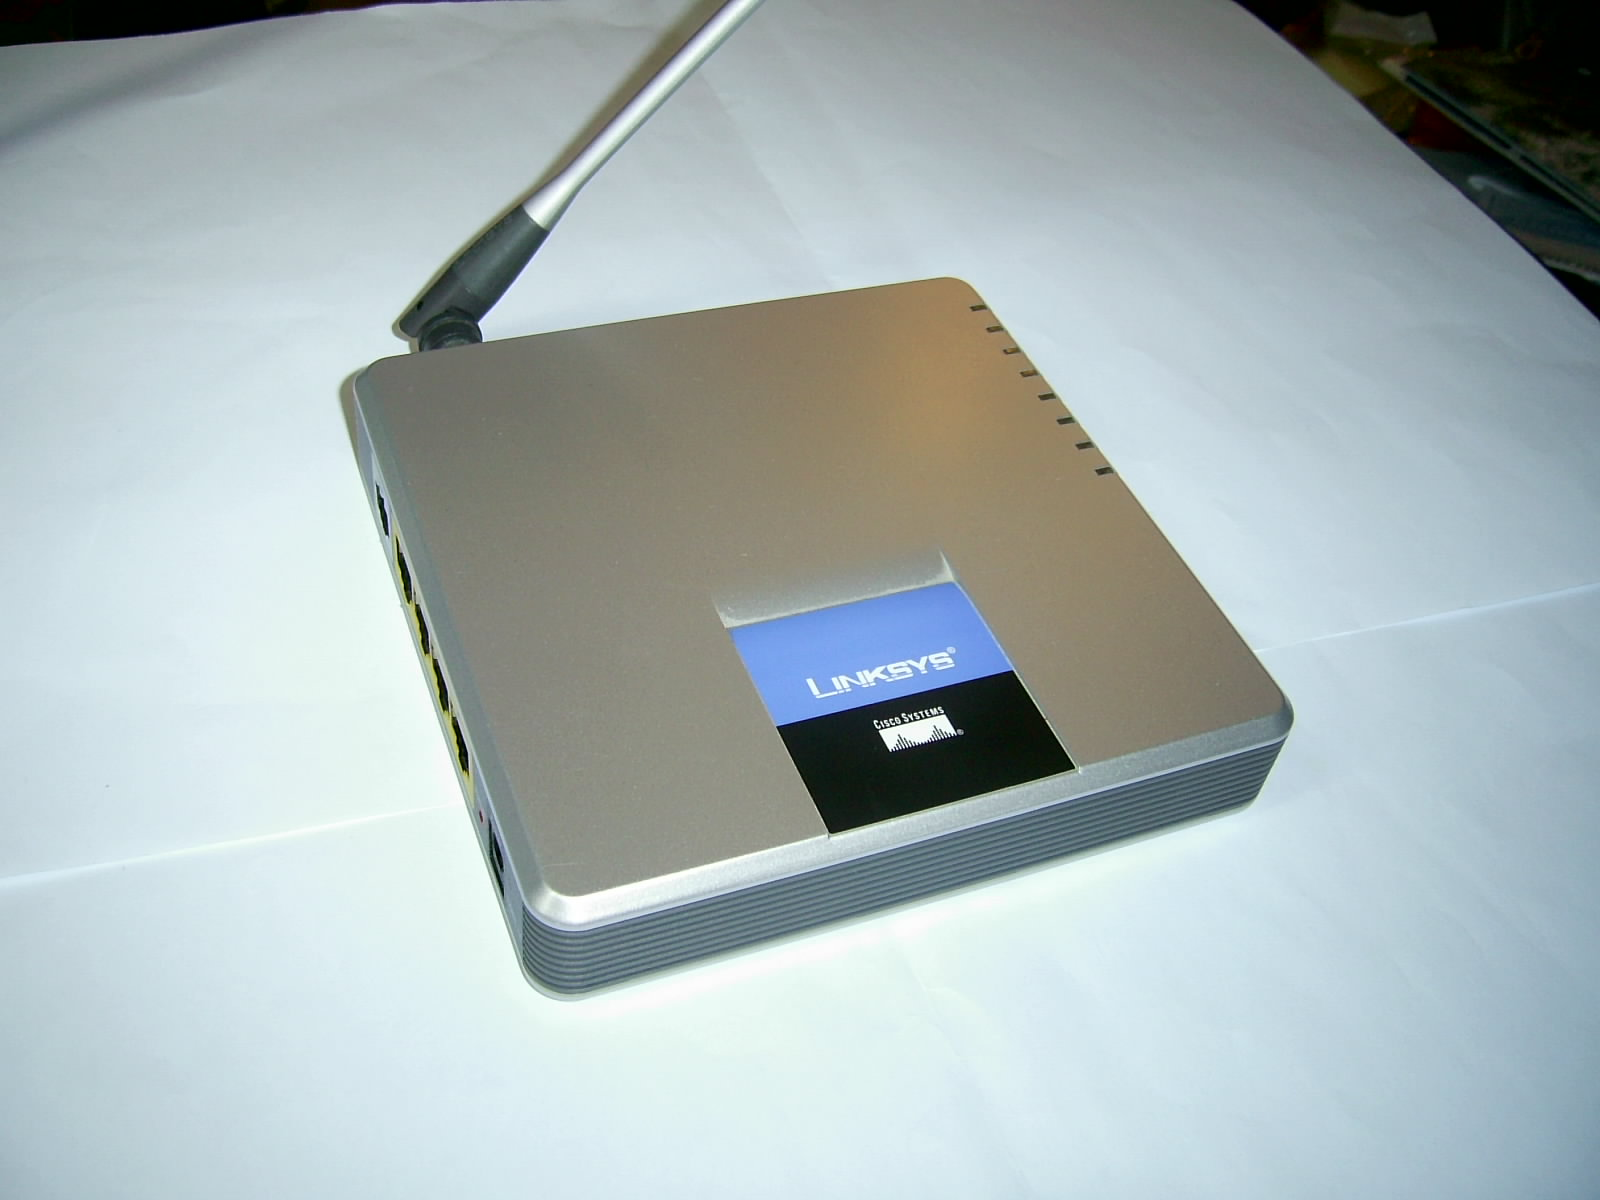 LINKSYS WAG54G V3 DRIVERS FOR WINDOWS 8